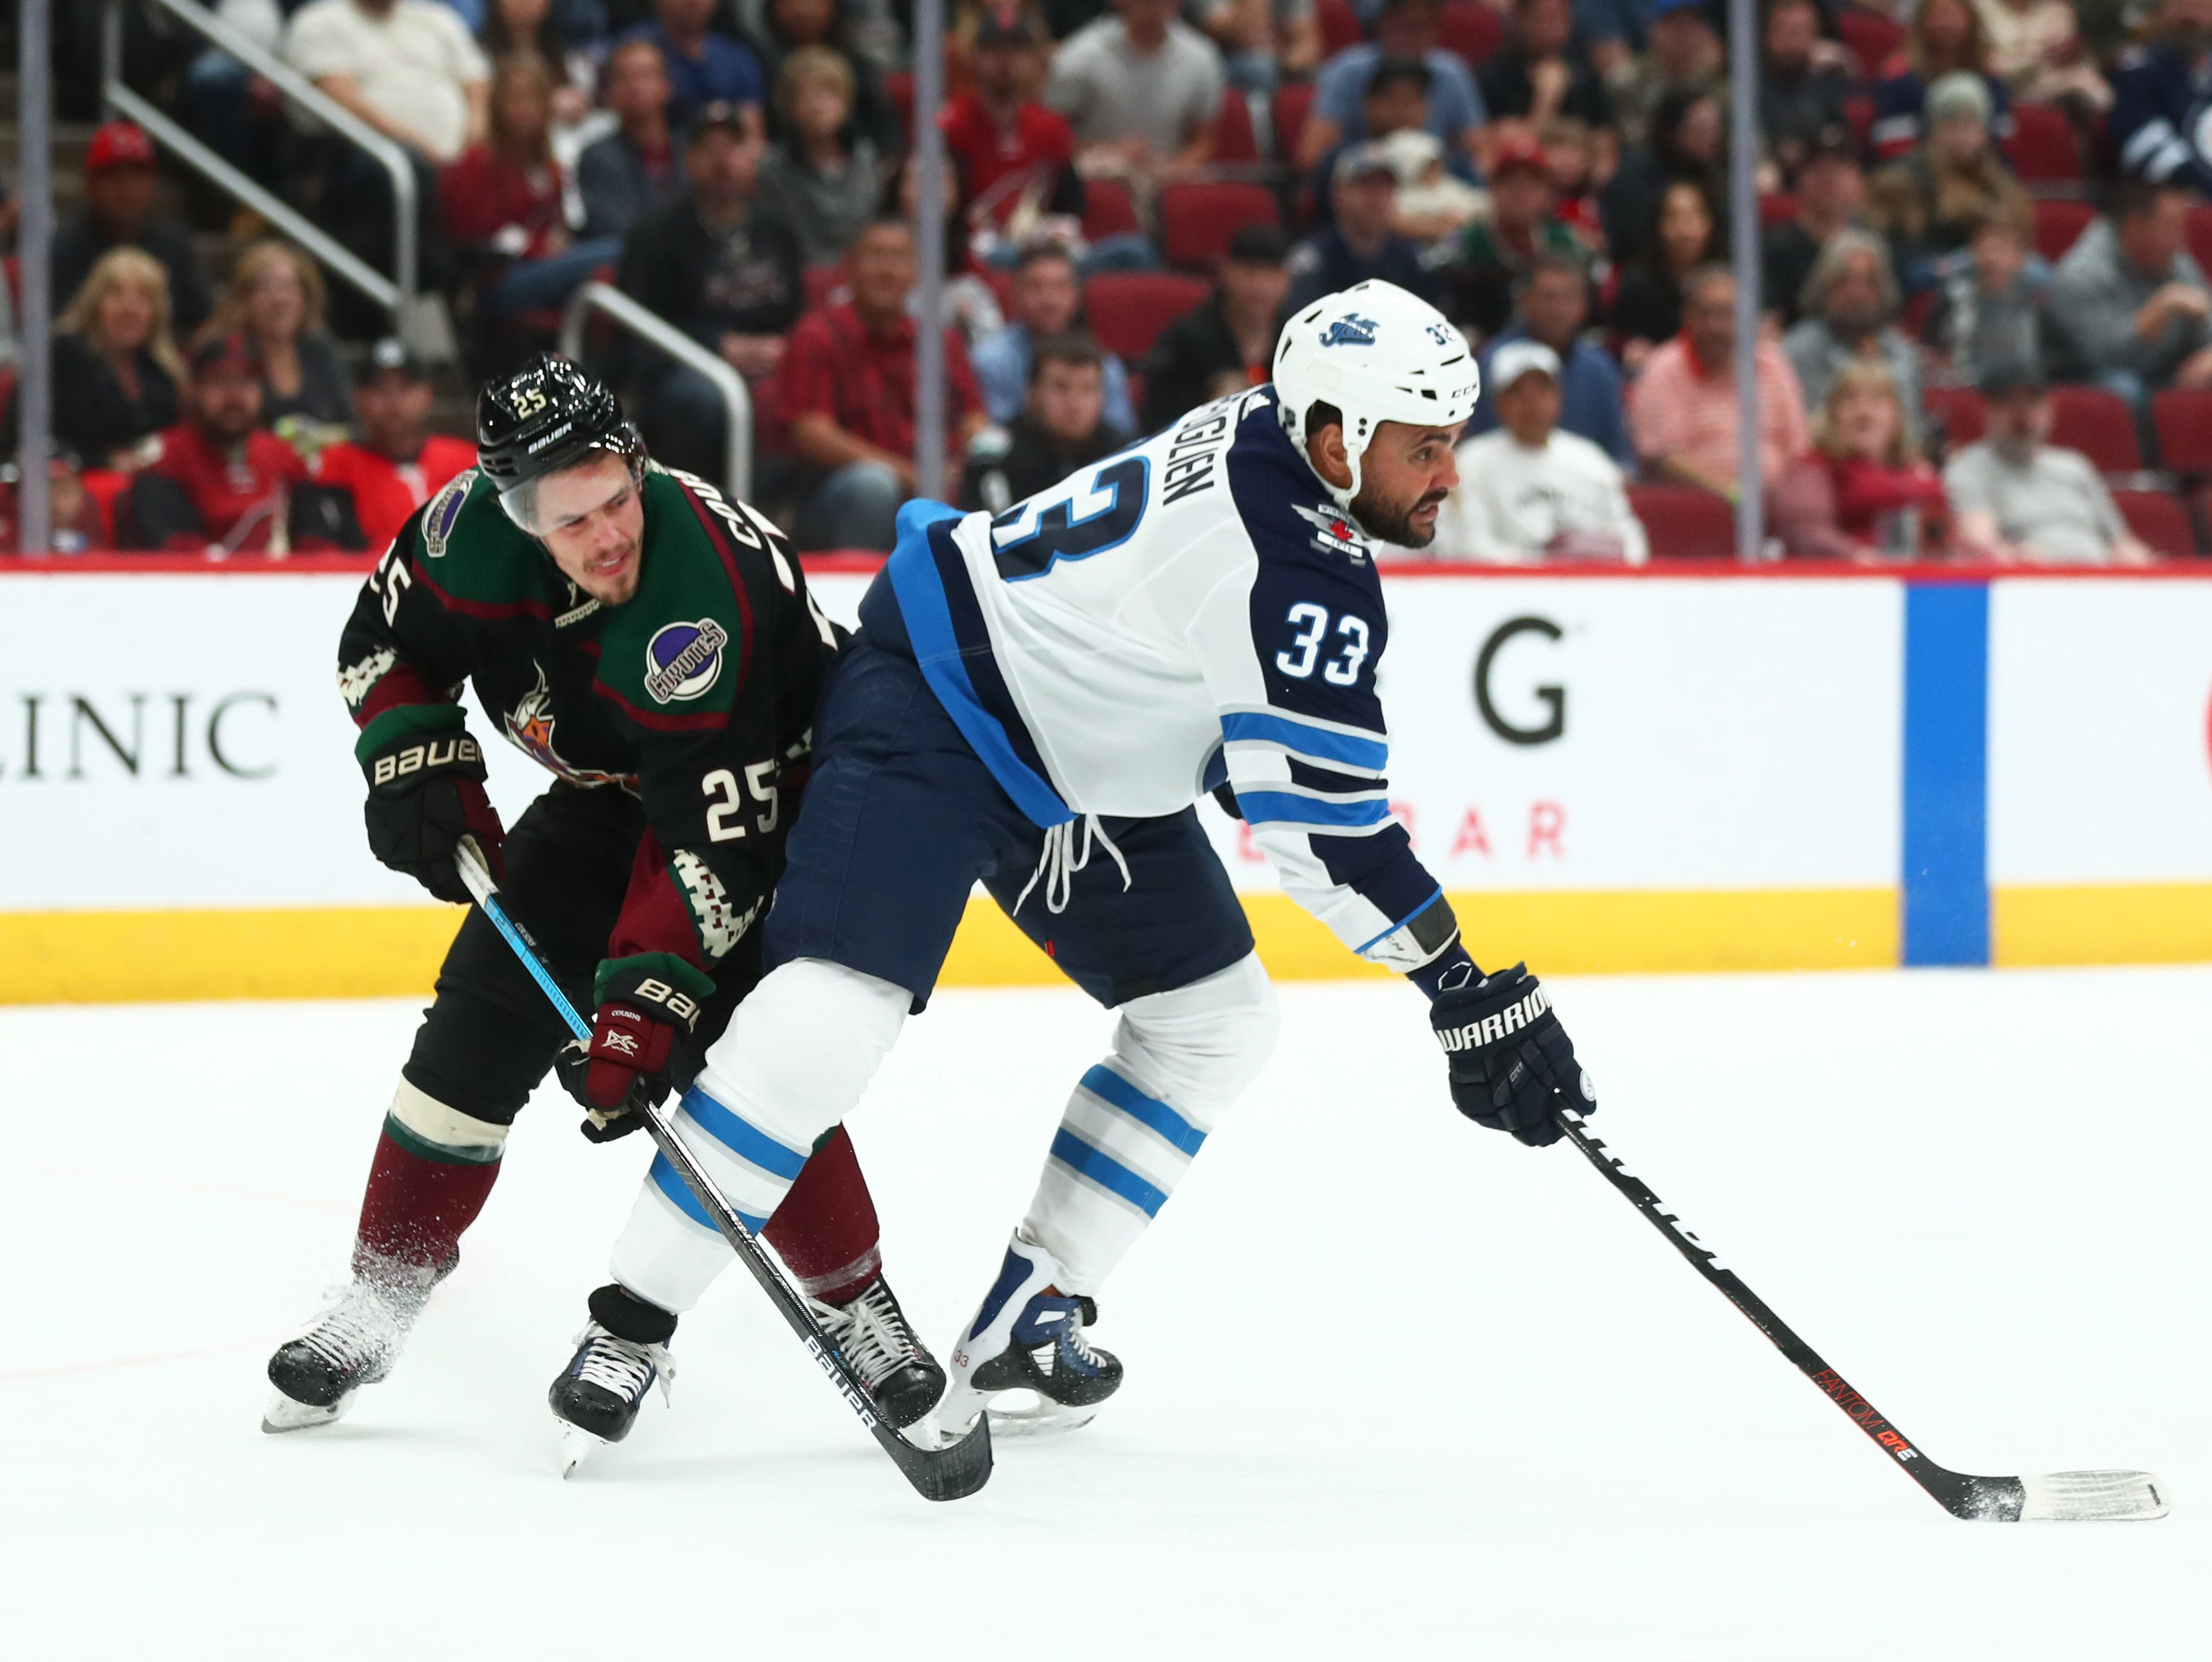 Apr 6, 2019; Glendale, AZ, USA; Arizona Coyotes center Nick Cousins (25) battles for the puck against Winnipeg Jets defenseman Dustin Byfuglien (33) in the first period at Gila River Arena. Mandatory Credit: Mark J. Rebilas-USA TODAY Sports